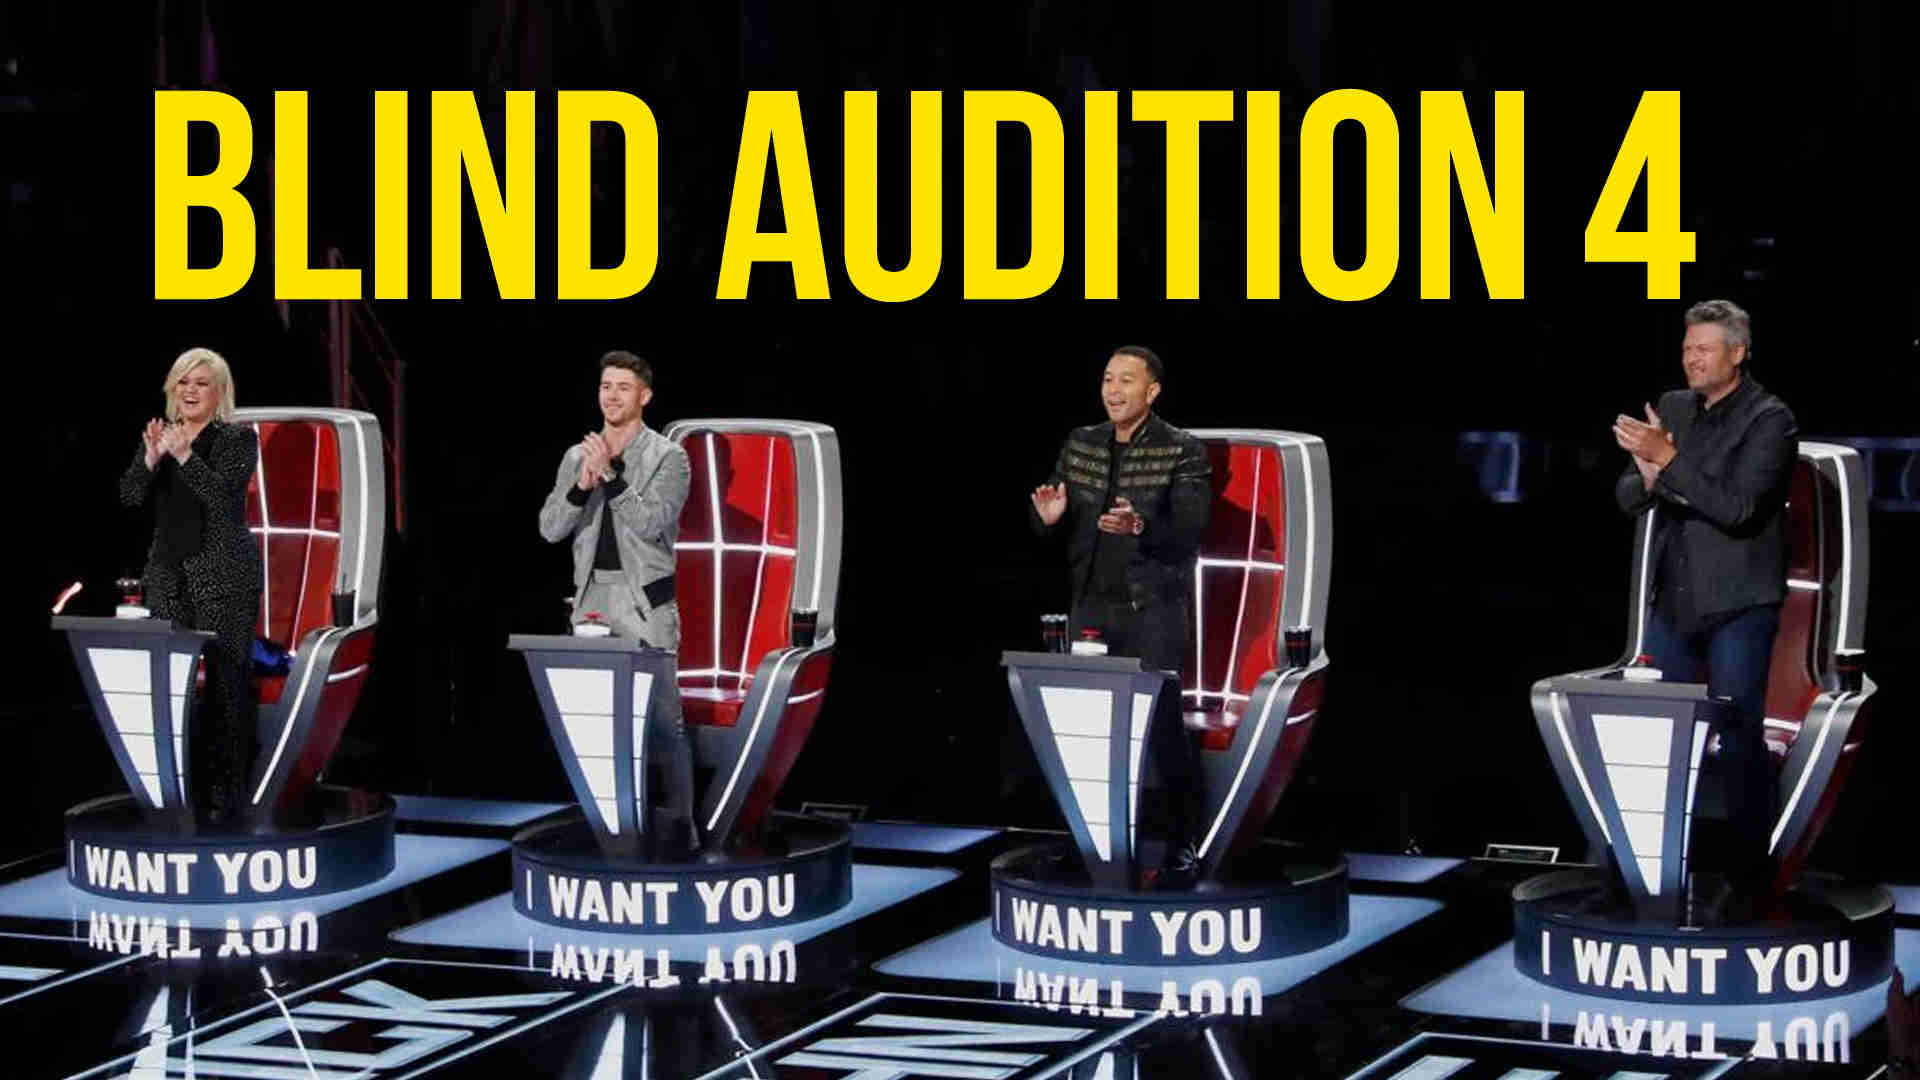 Watch The Voice USA 2020 Blind Auditions Tonight Episode 4 on 9 March 2020